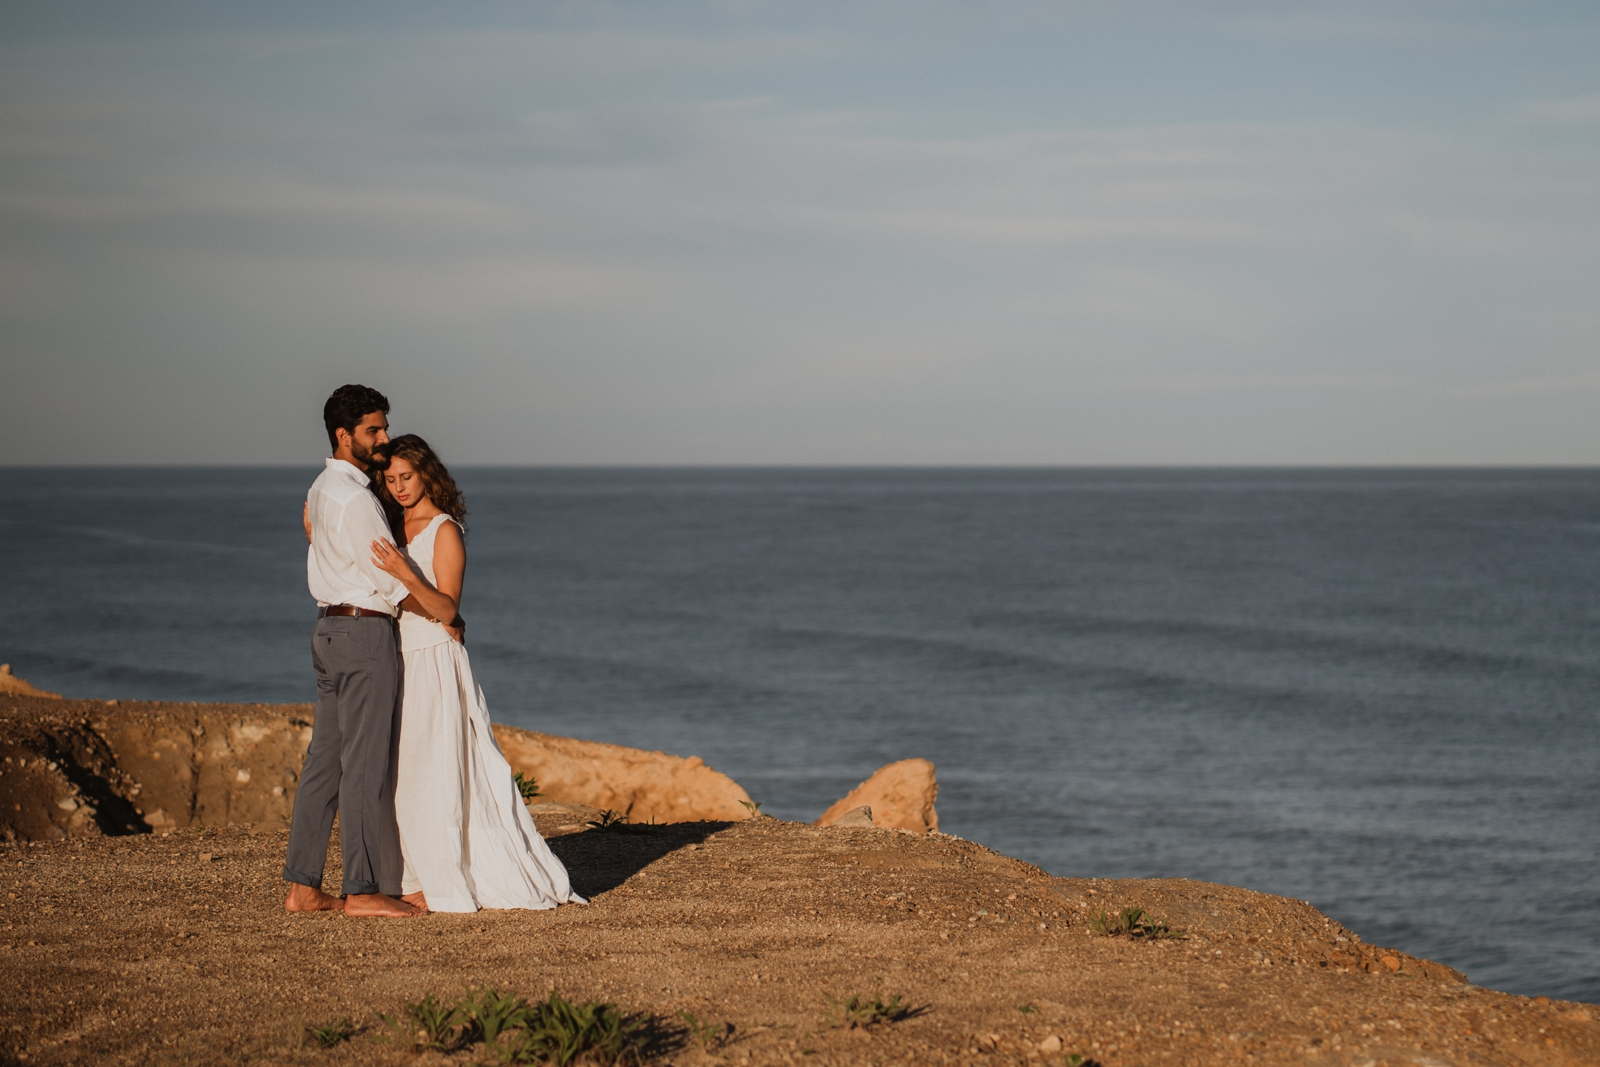 JJP_Nikki & Bud_Shadmoor_Montauk_NY_Cliff Engagement Session30.jpg_blog.jpg